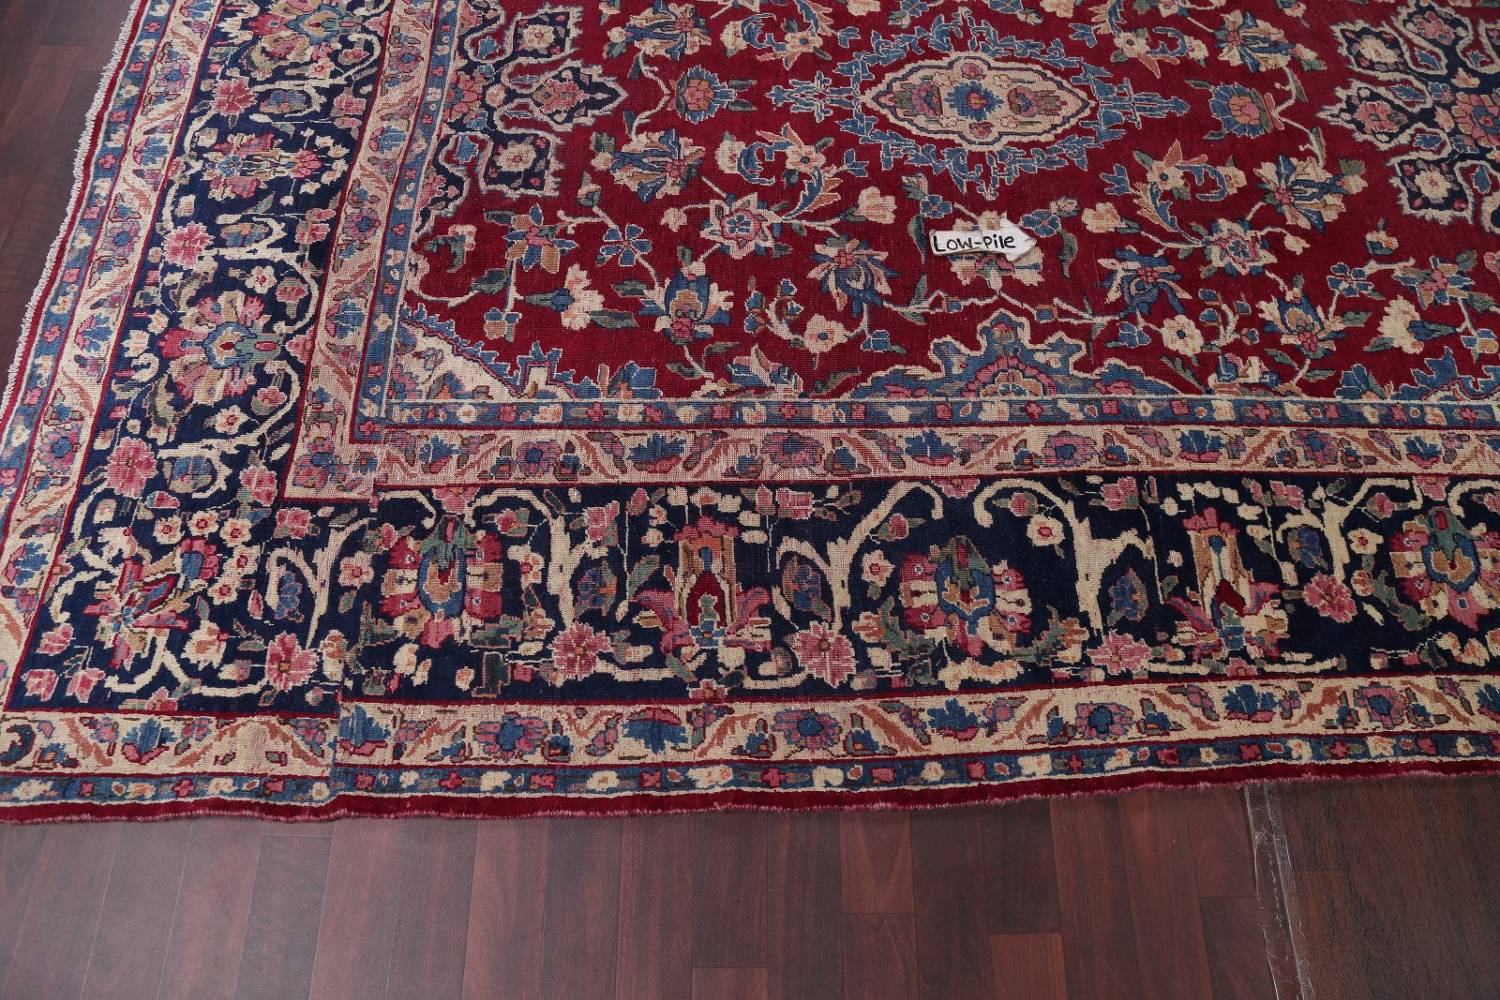 All-Over Floral 11x16 Yazd Persian Area Rug image 20